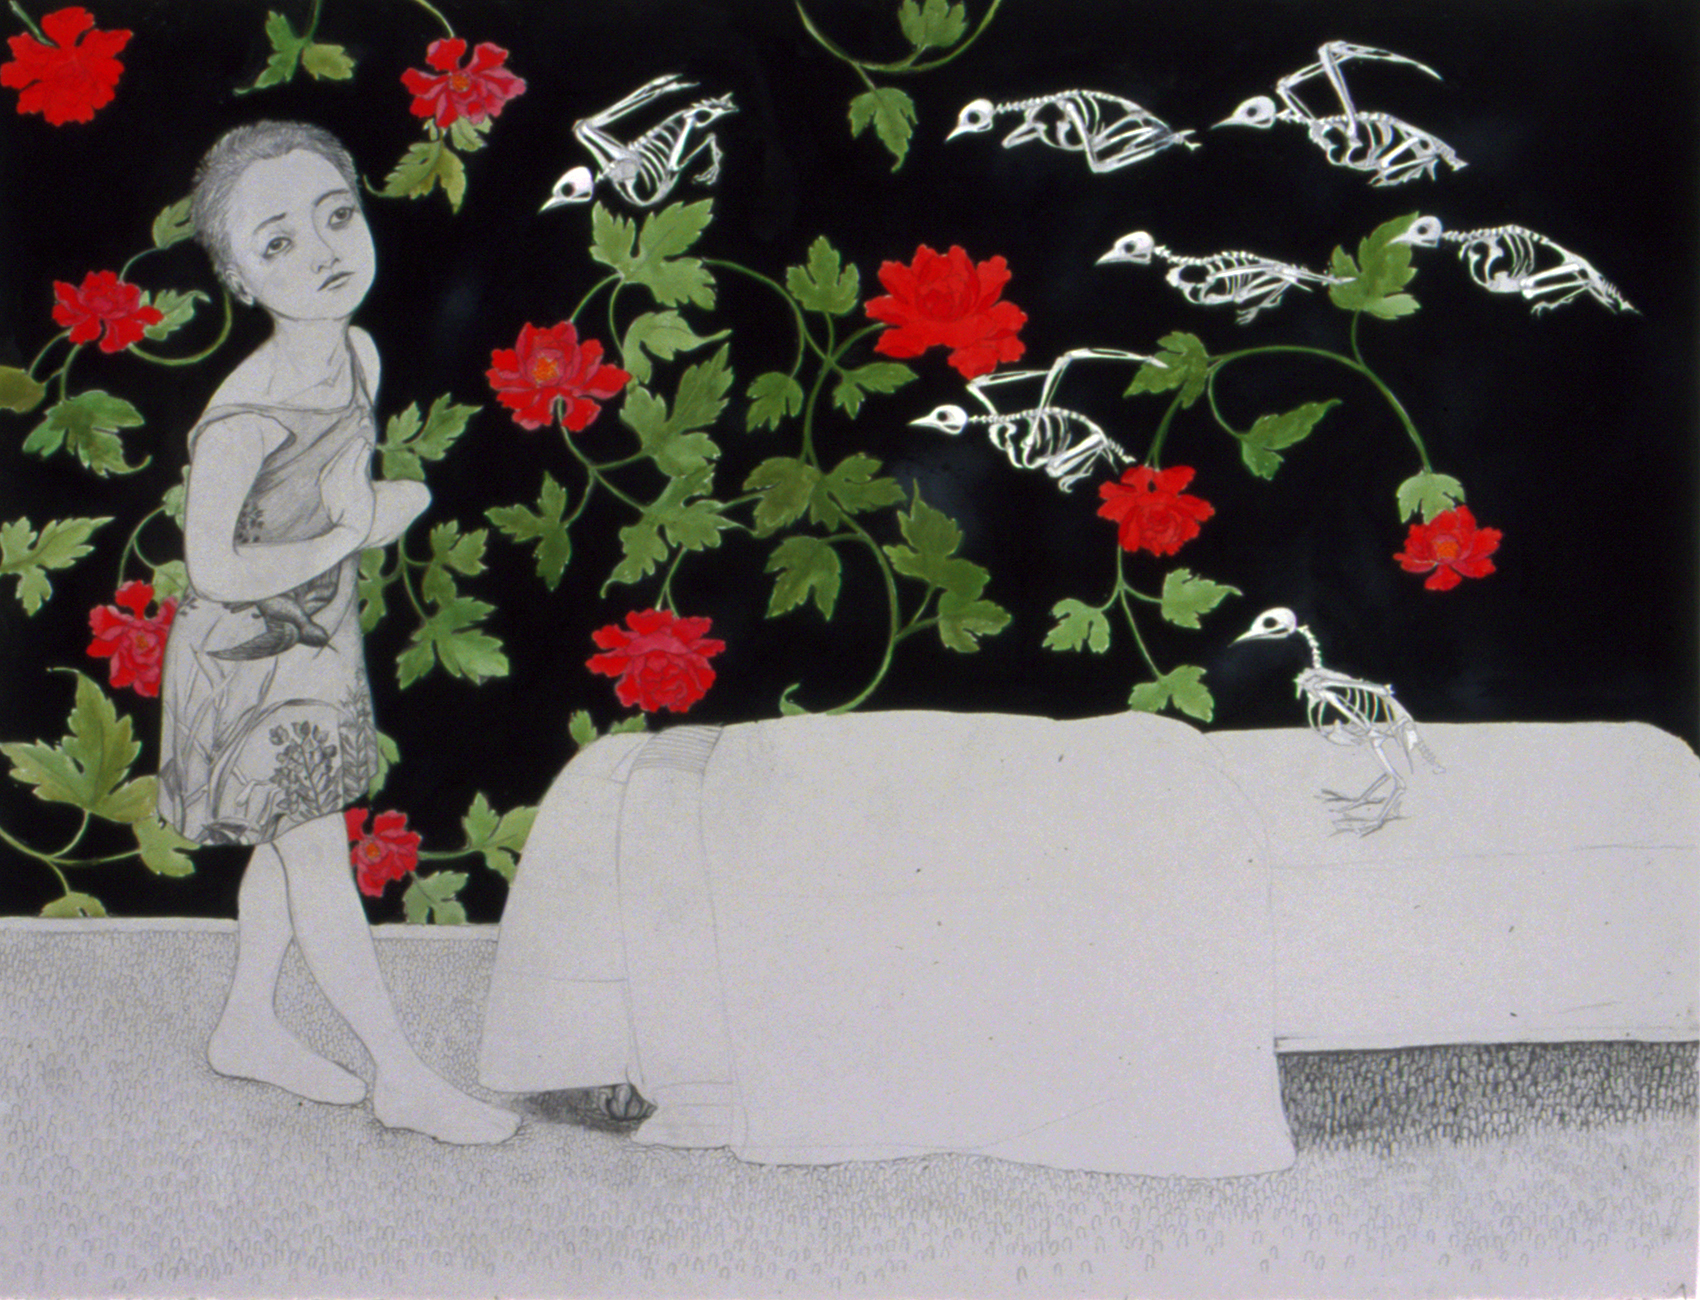 Ghostbirds II , 2004 Graphite, ink on gray paper 38 X 50 inches Private Collection